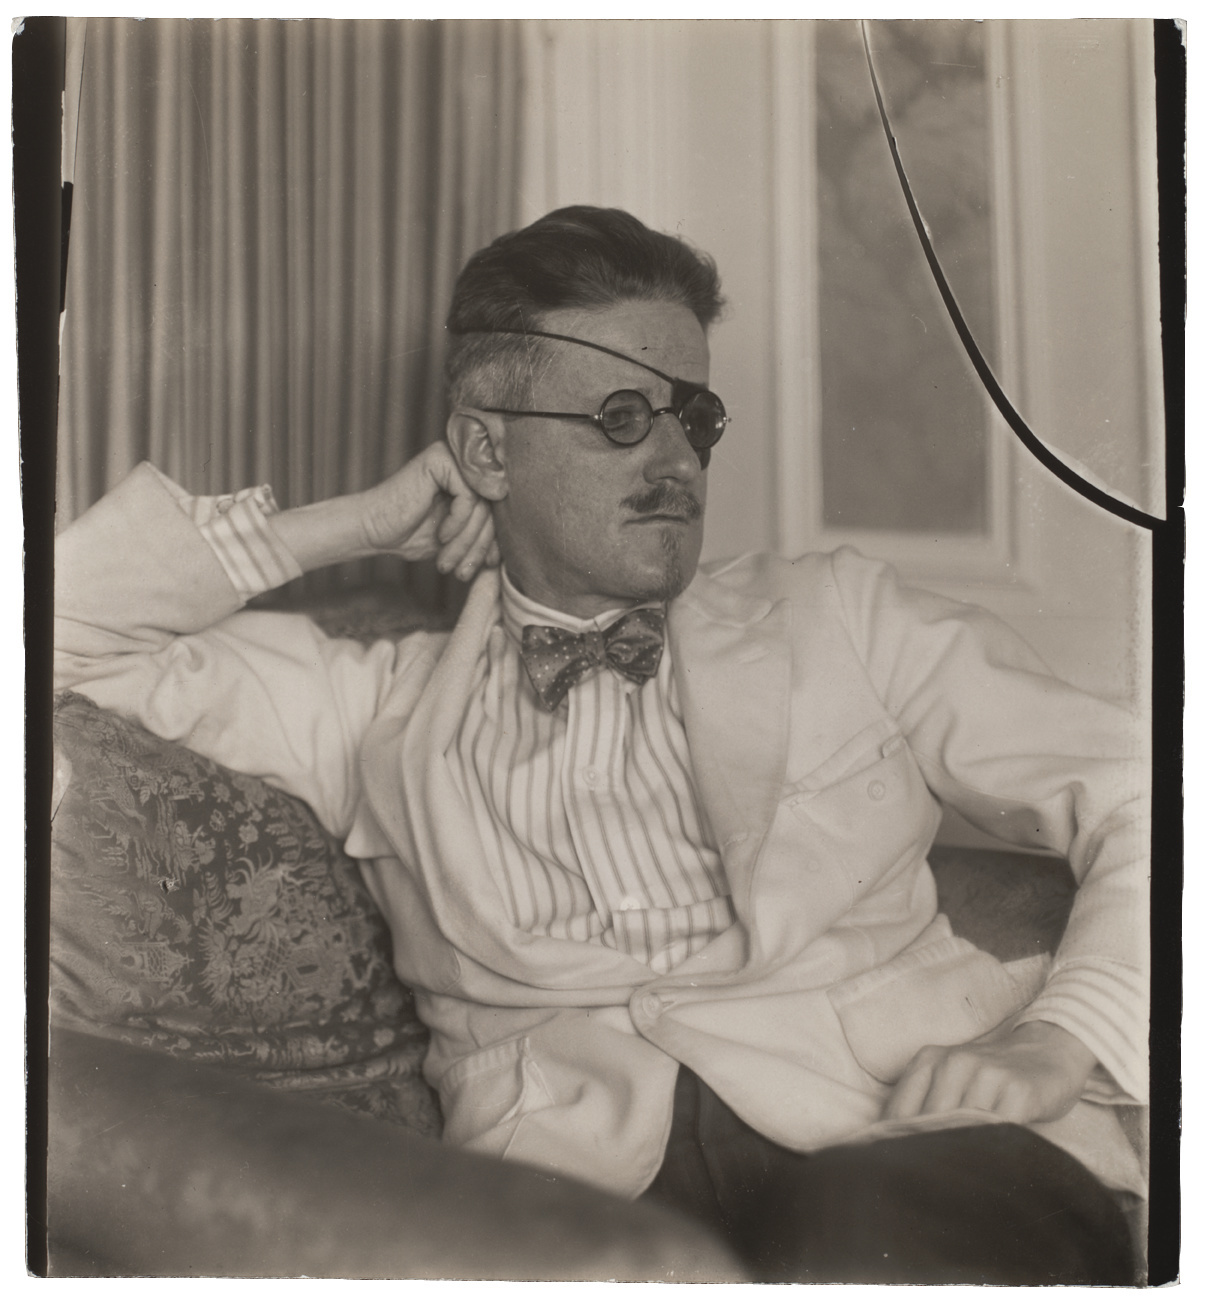 james joyce object photo moma title james joyce